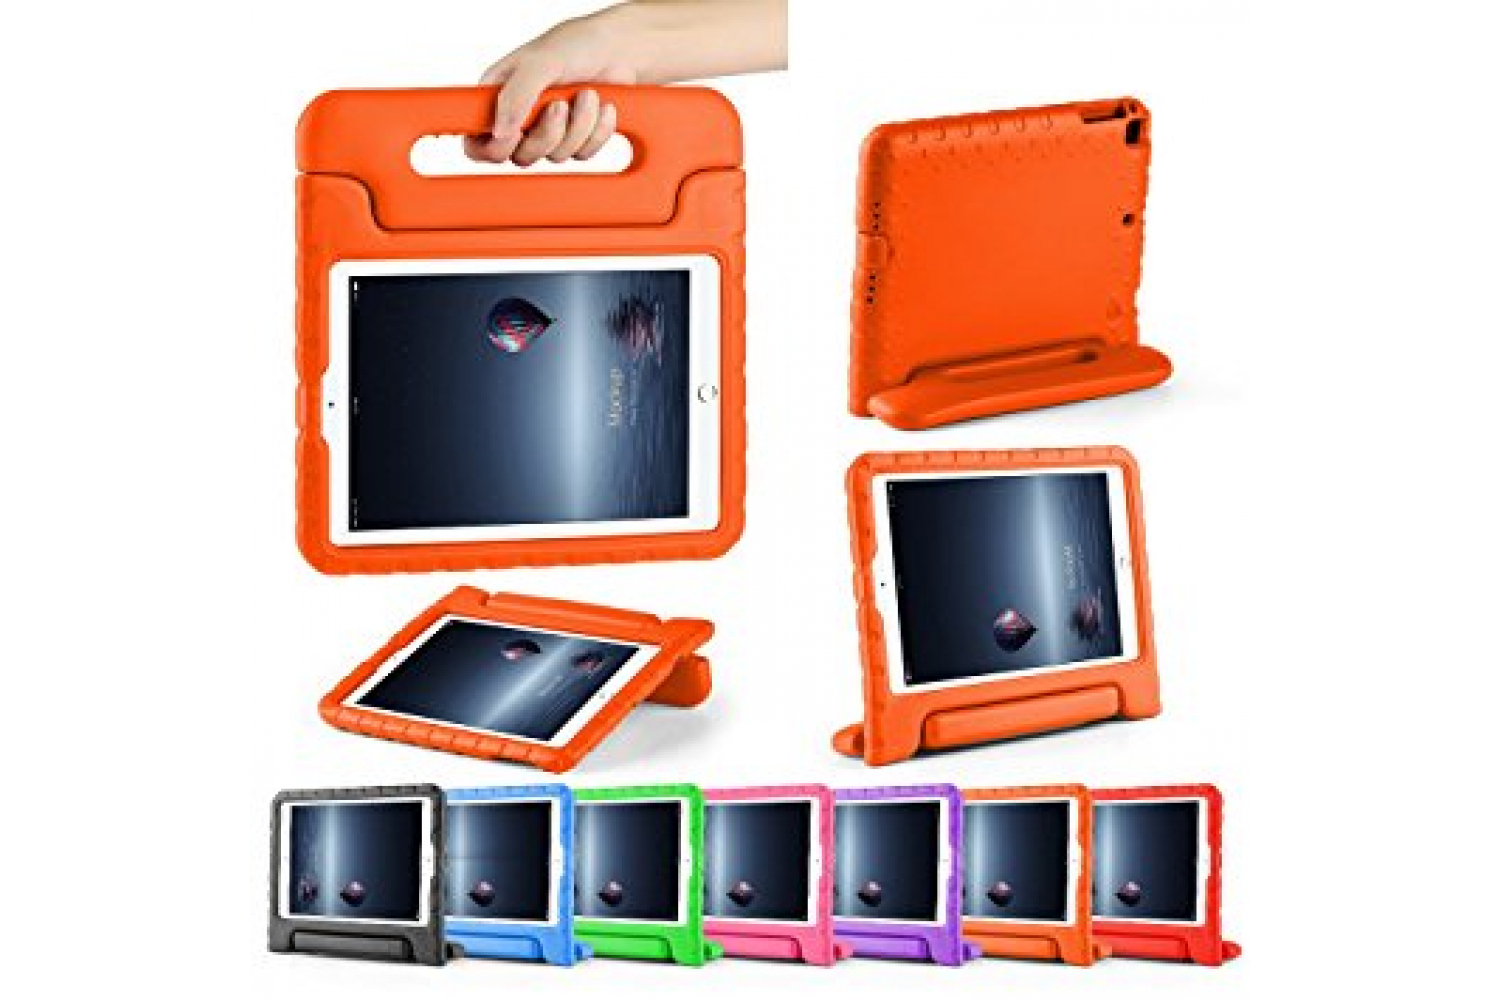 iPad Air 1 kinderhoes oranje